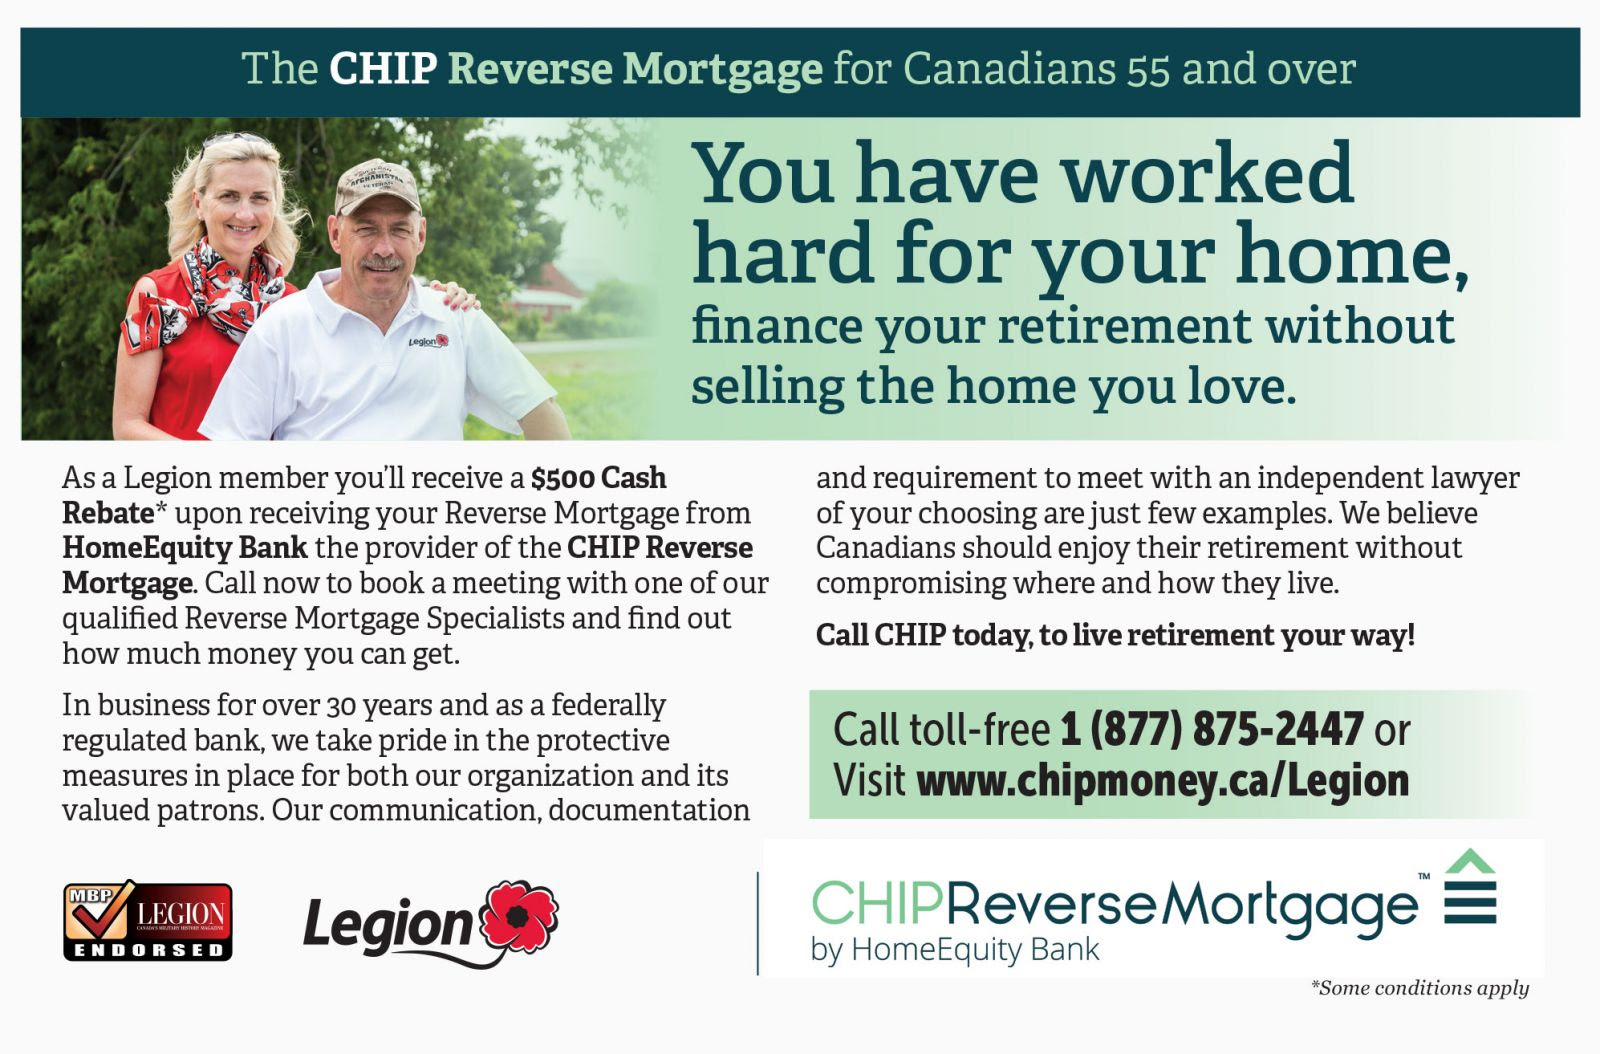 CHIP Reverse Mortgage for Canadians 55 and over